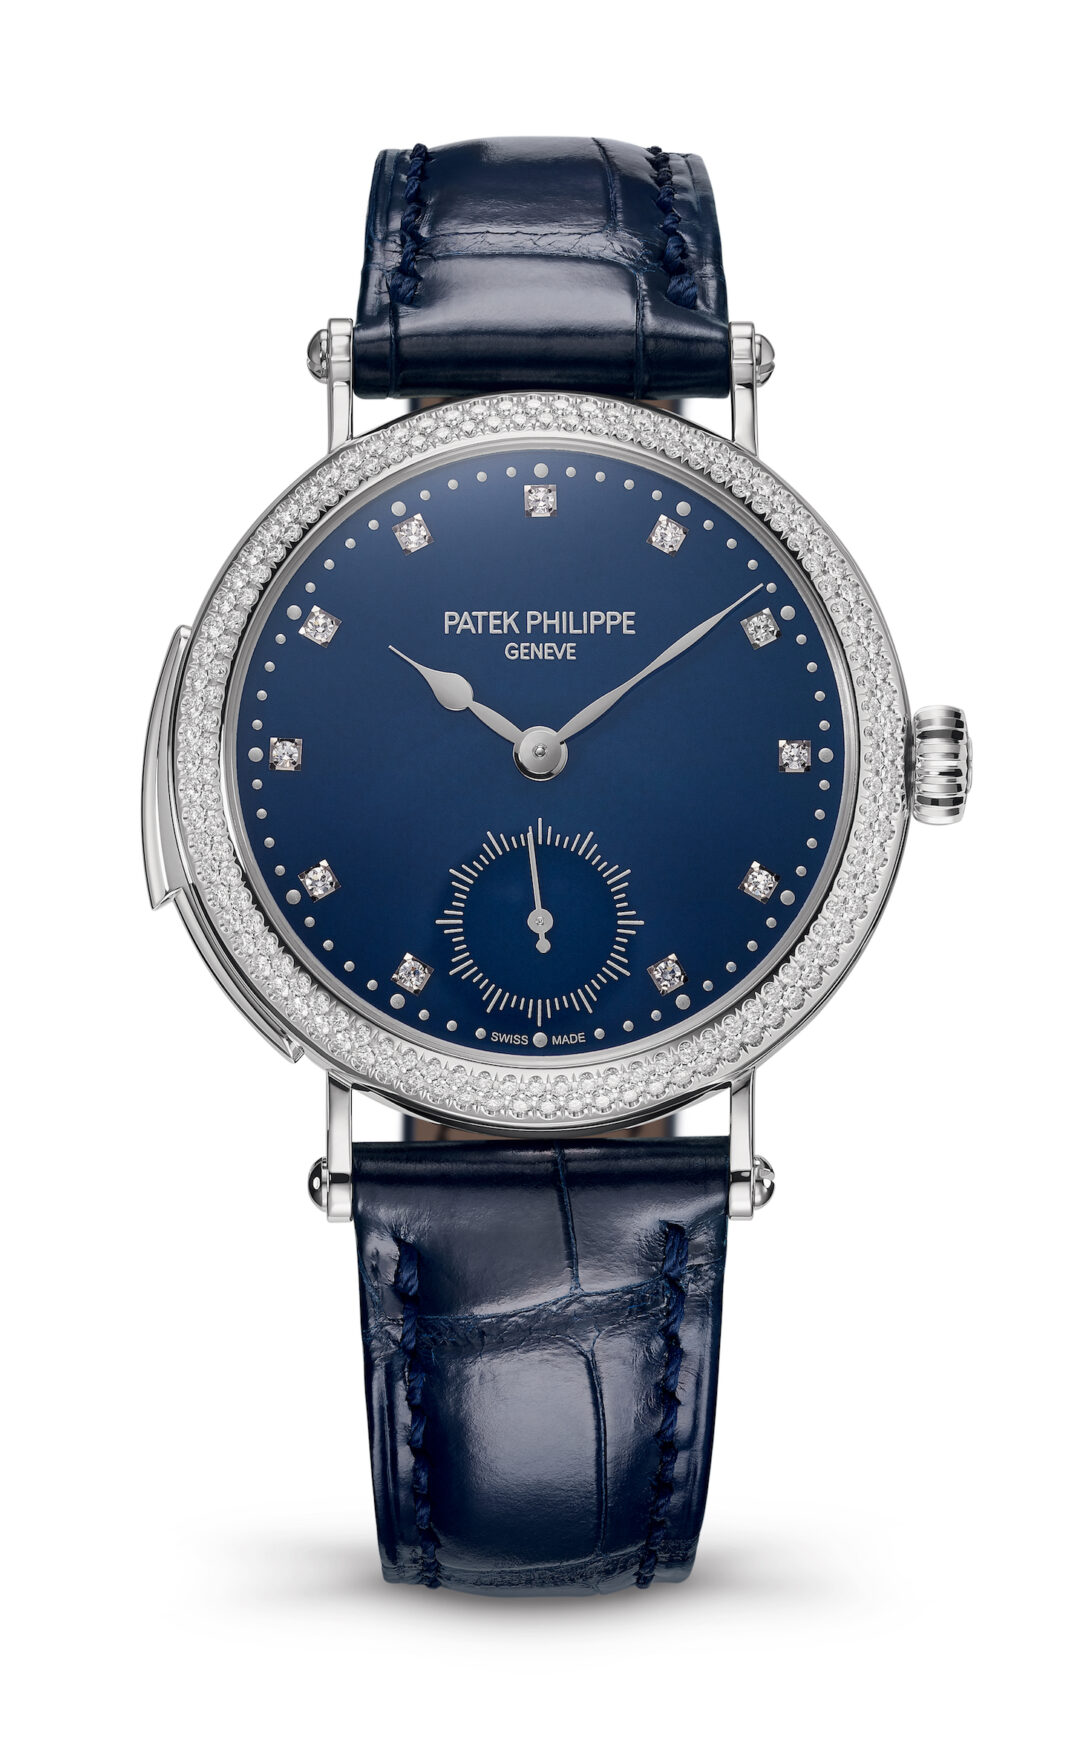 Patek Philippe Ladies' Minute Repeater Ref. 7000/250 New York 2017 Special Edition